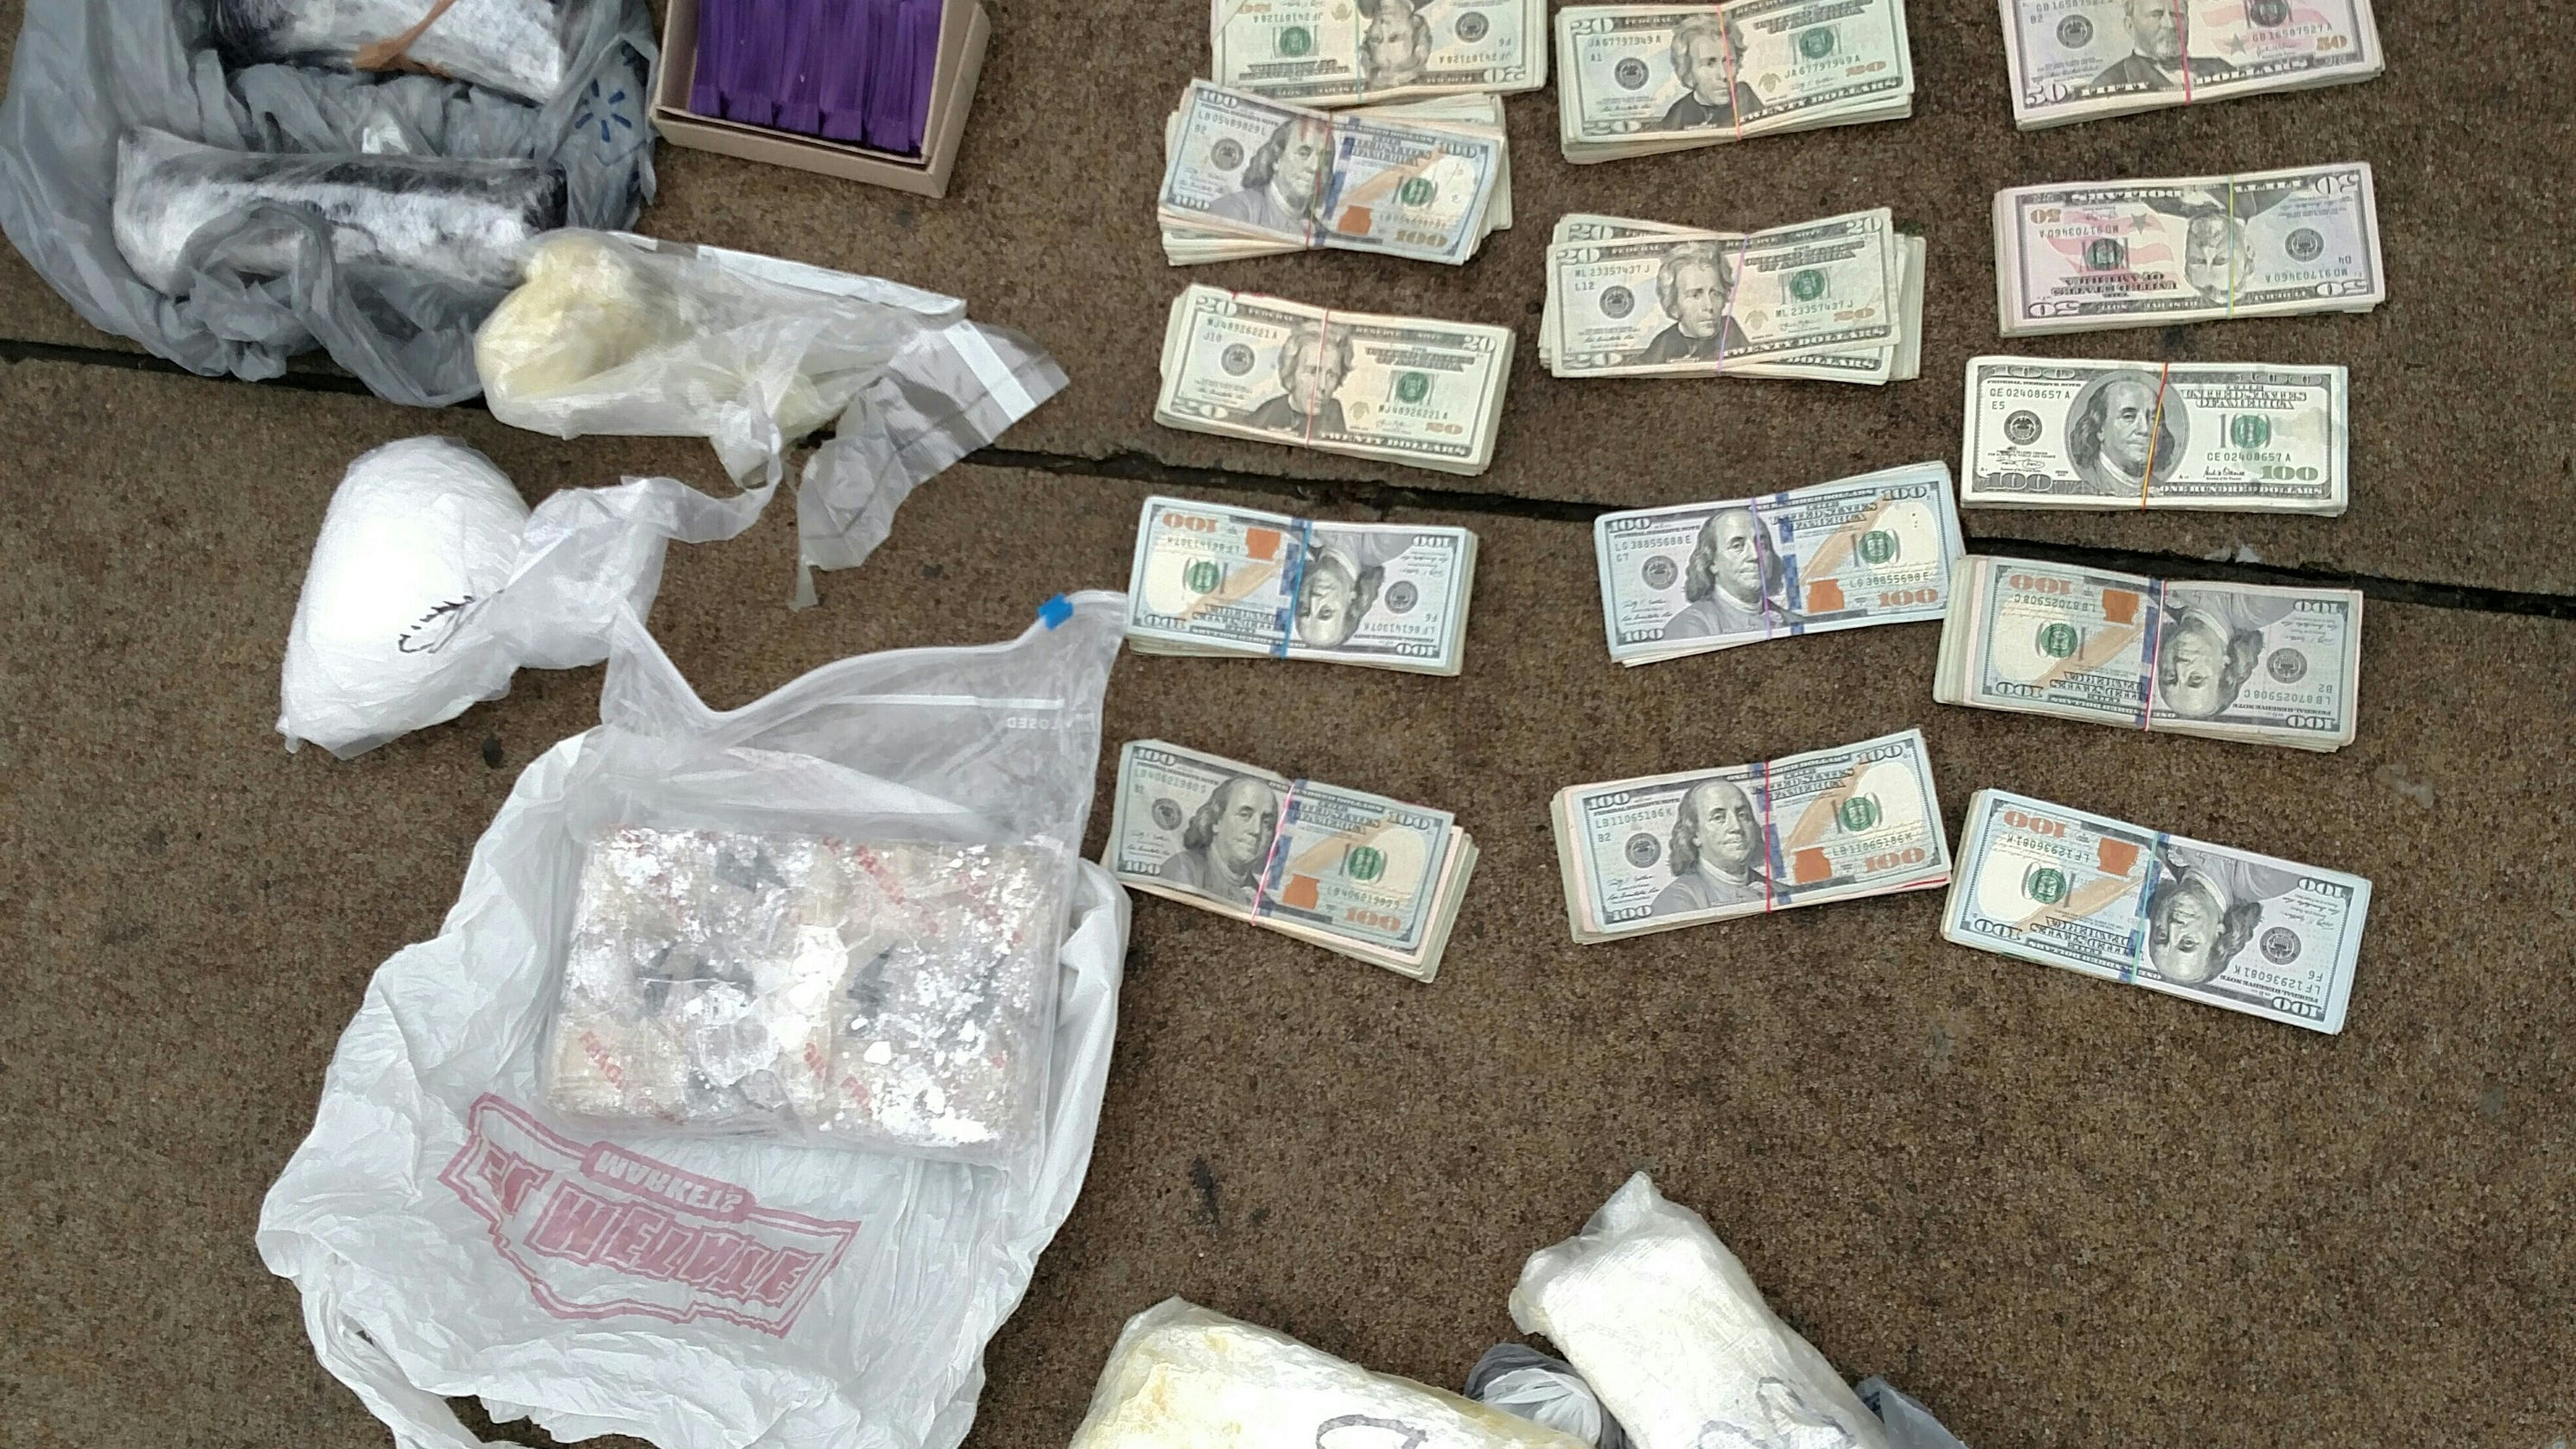 Deposit major drug bust: Suspects indicted on federal charges